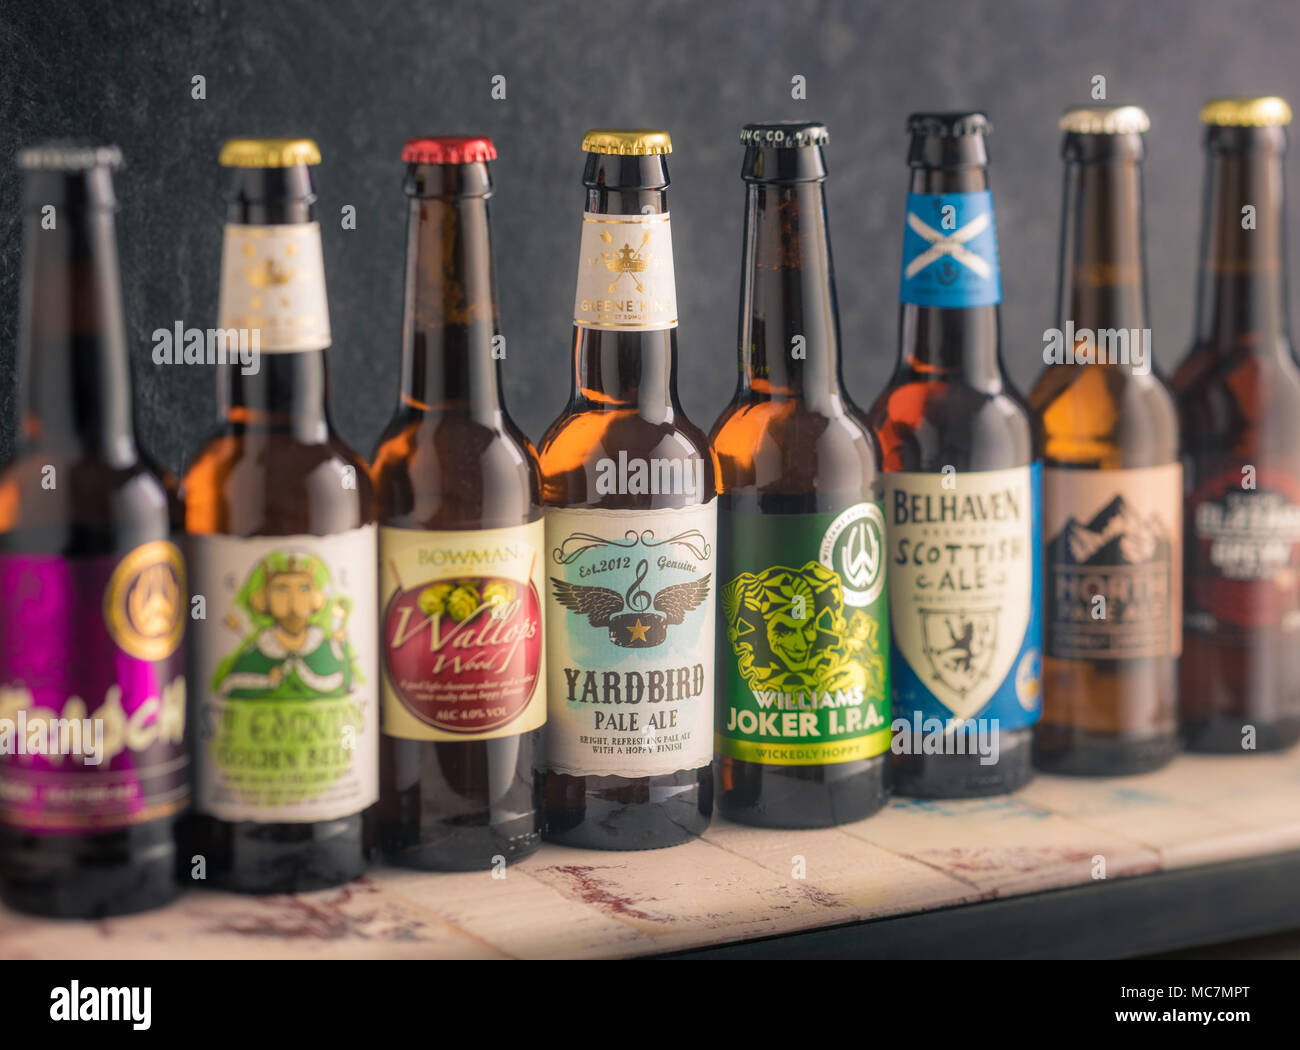 Collection of small independent brewery craft beers in bottles - Stock Image